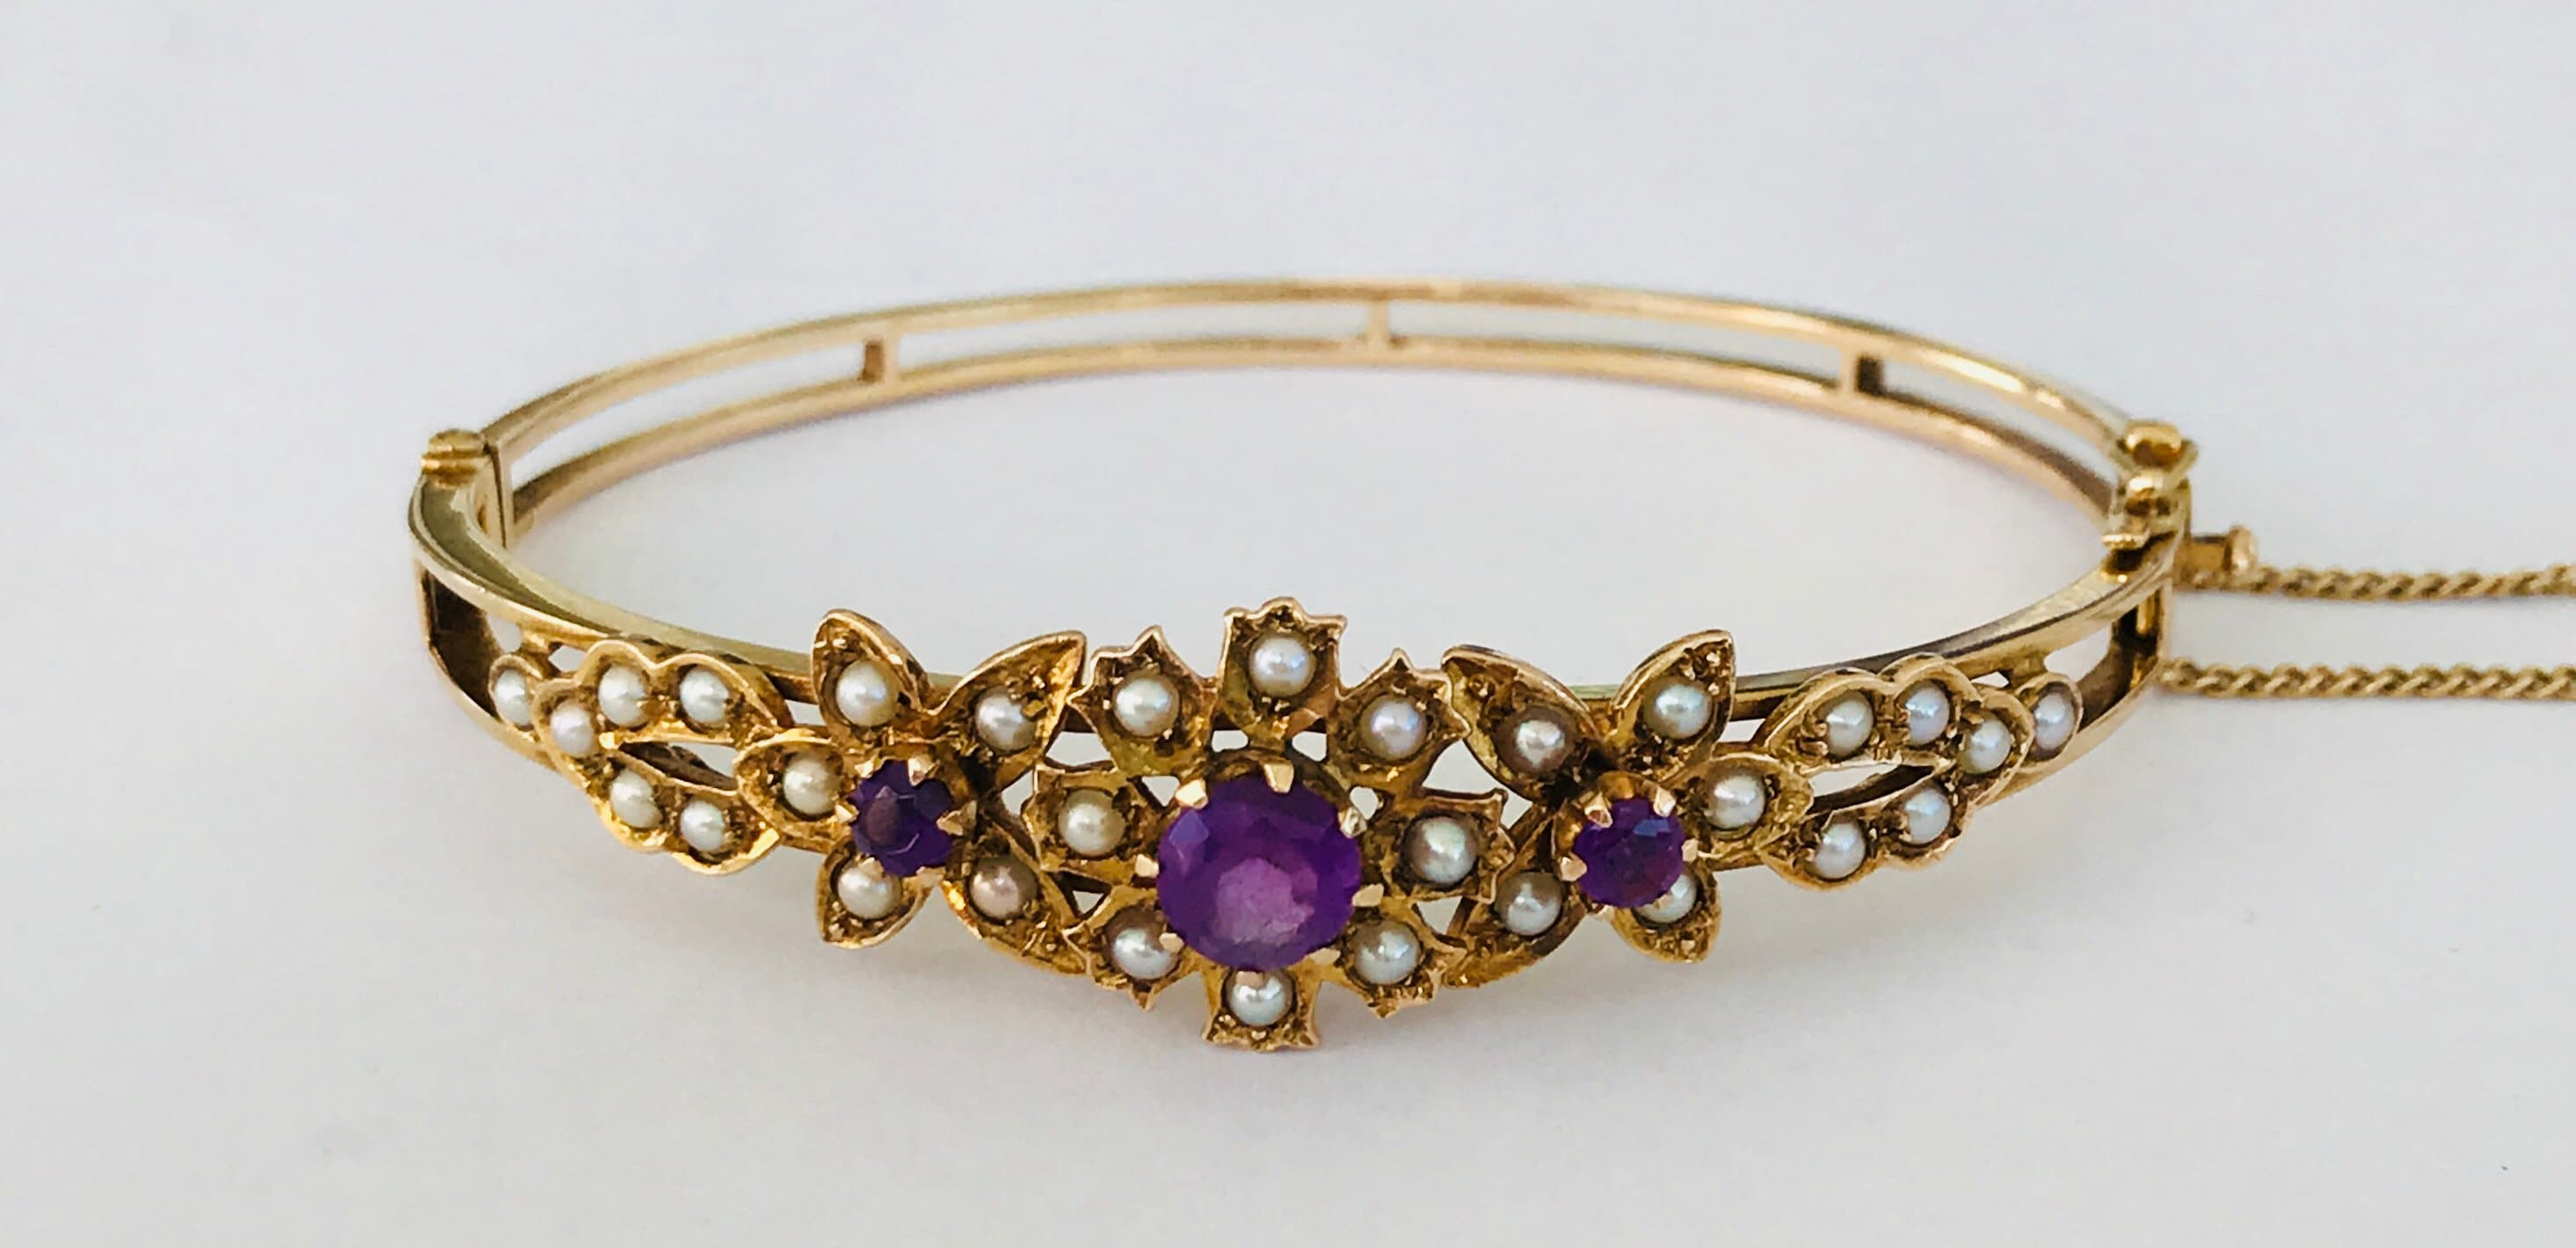 silver amethyst shooting star bangles in levin ed bracelet sterling bangle